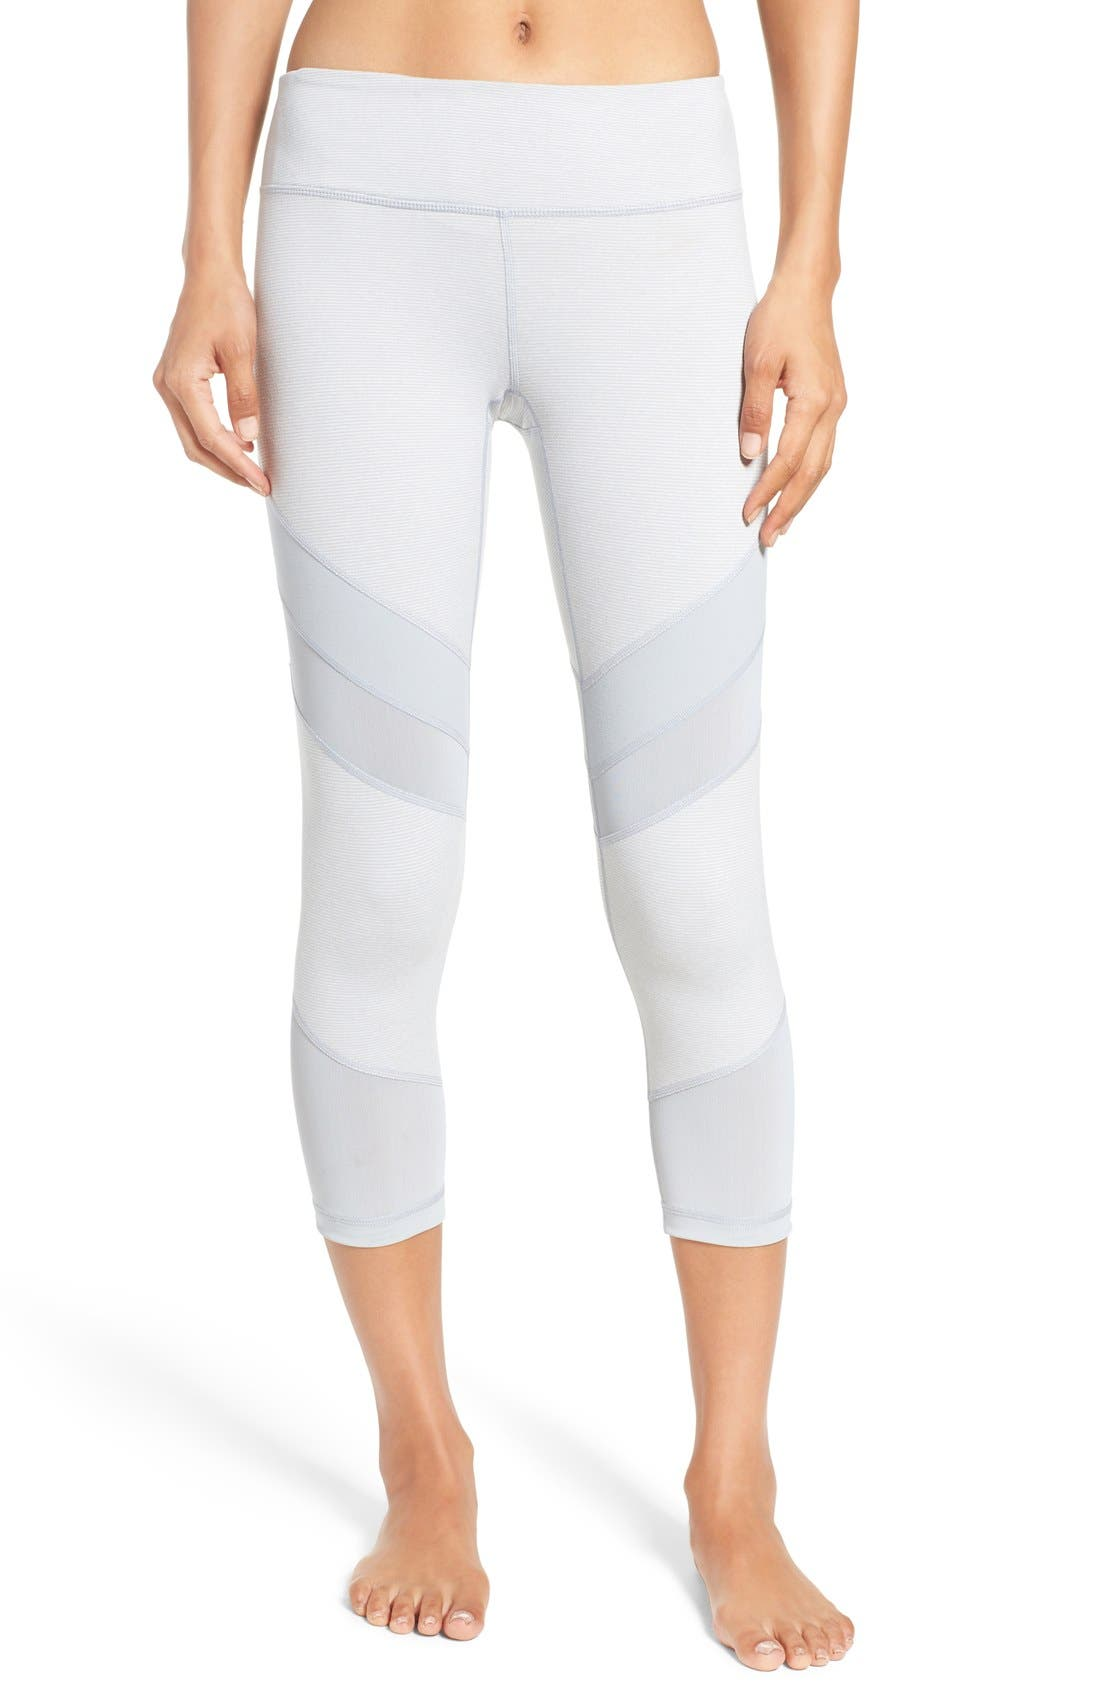 Alternate Image 1 Selected - Zella 'Live In - Electric Mix' Crop Leggings